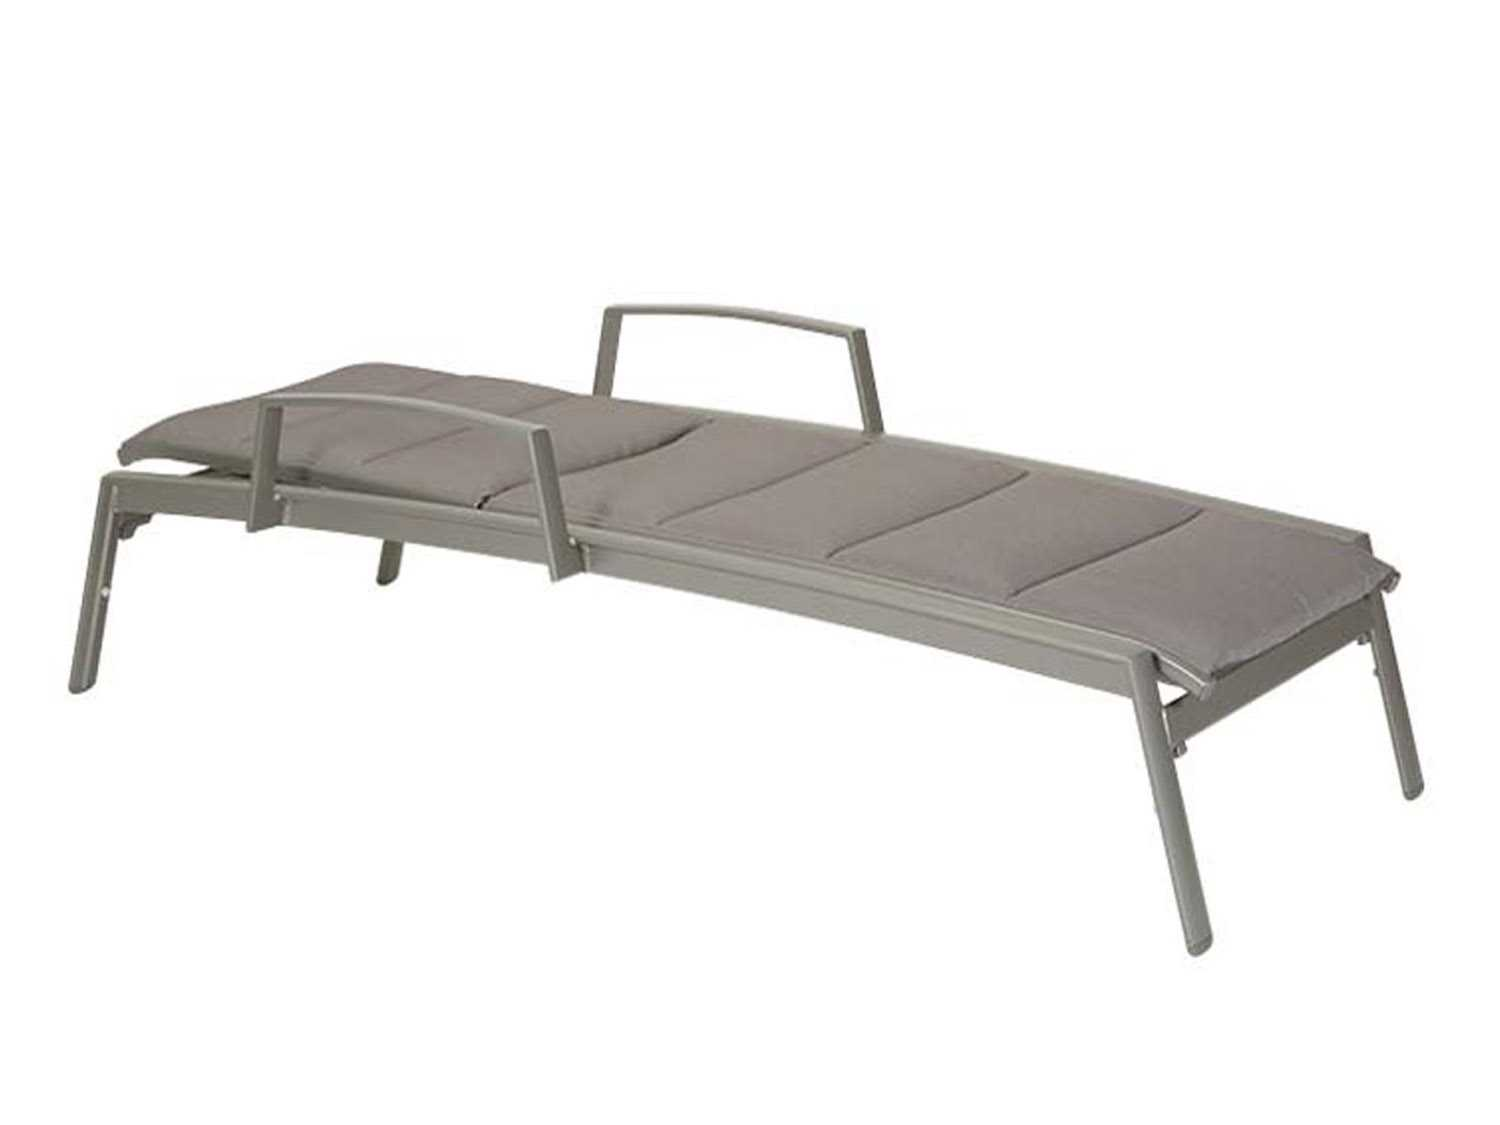 Tropitone elance padded sling aluminum chaise lounge with for Aluminium chaise lounge